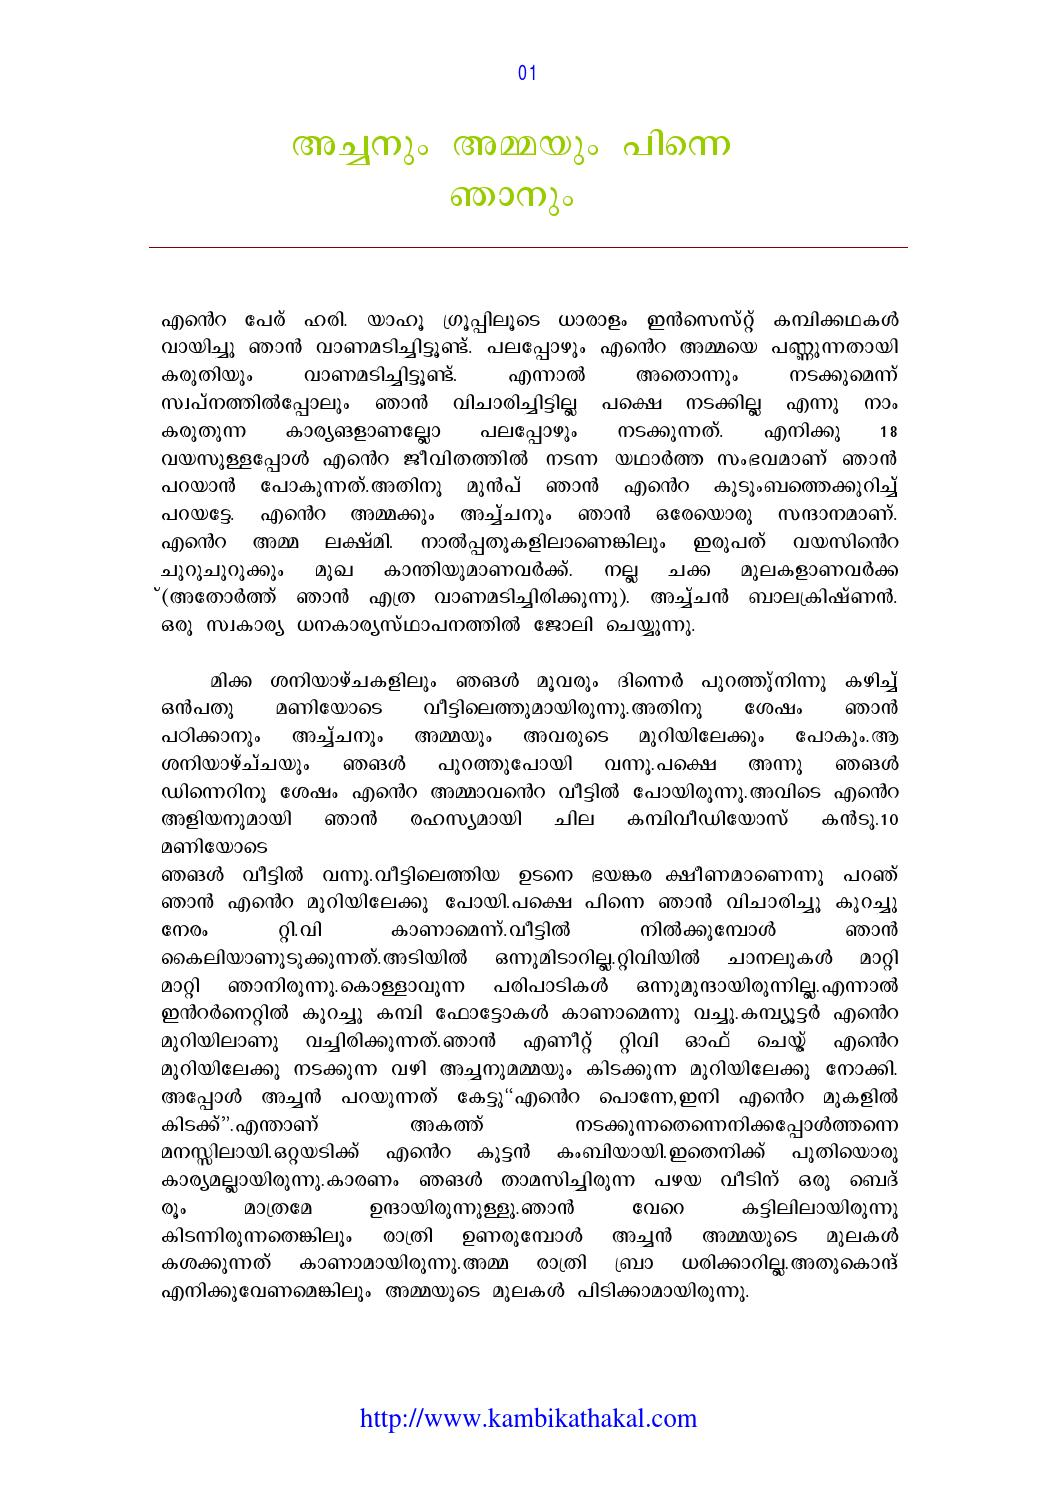 nostradamus malayalam pdf free download